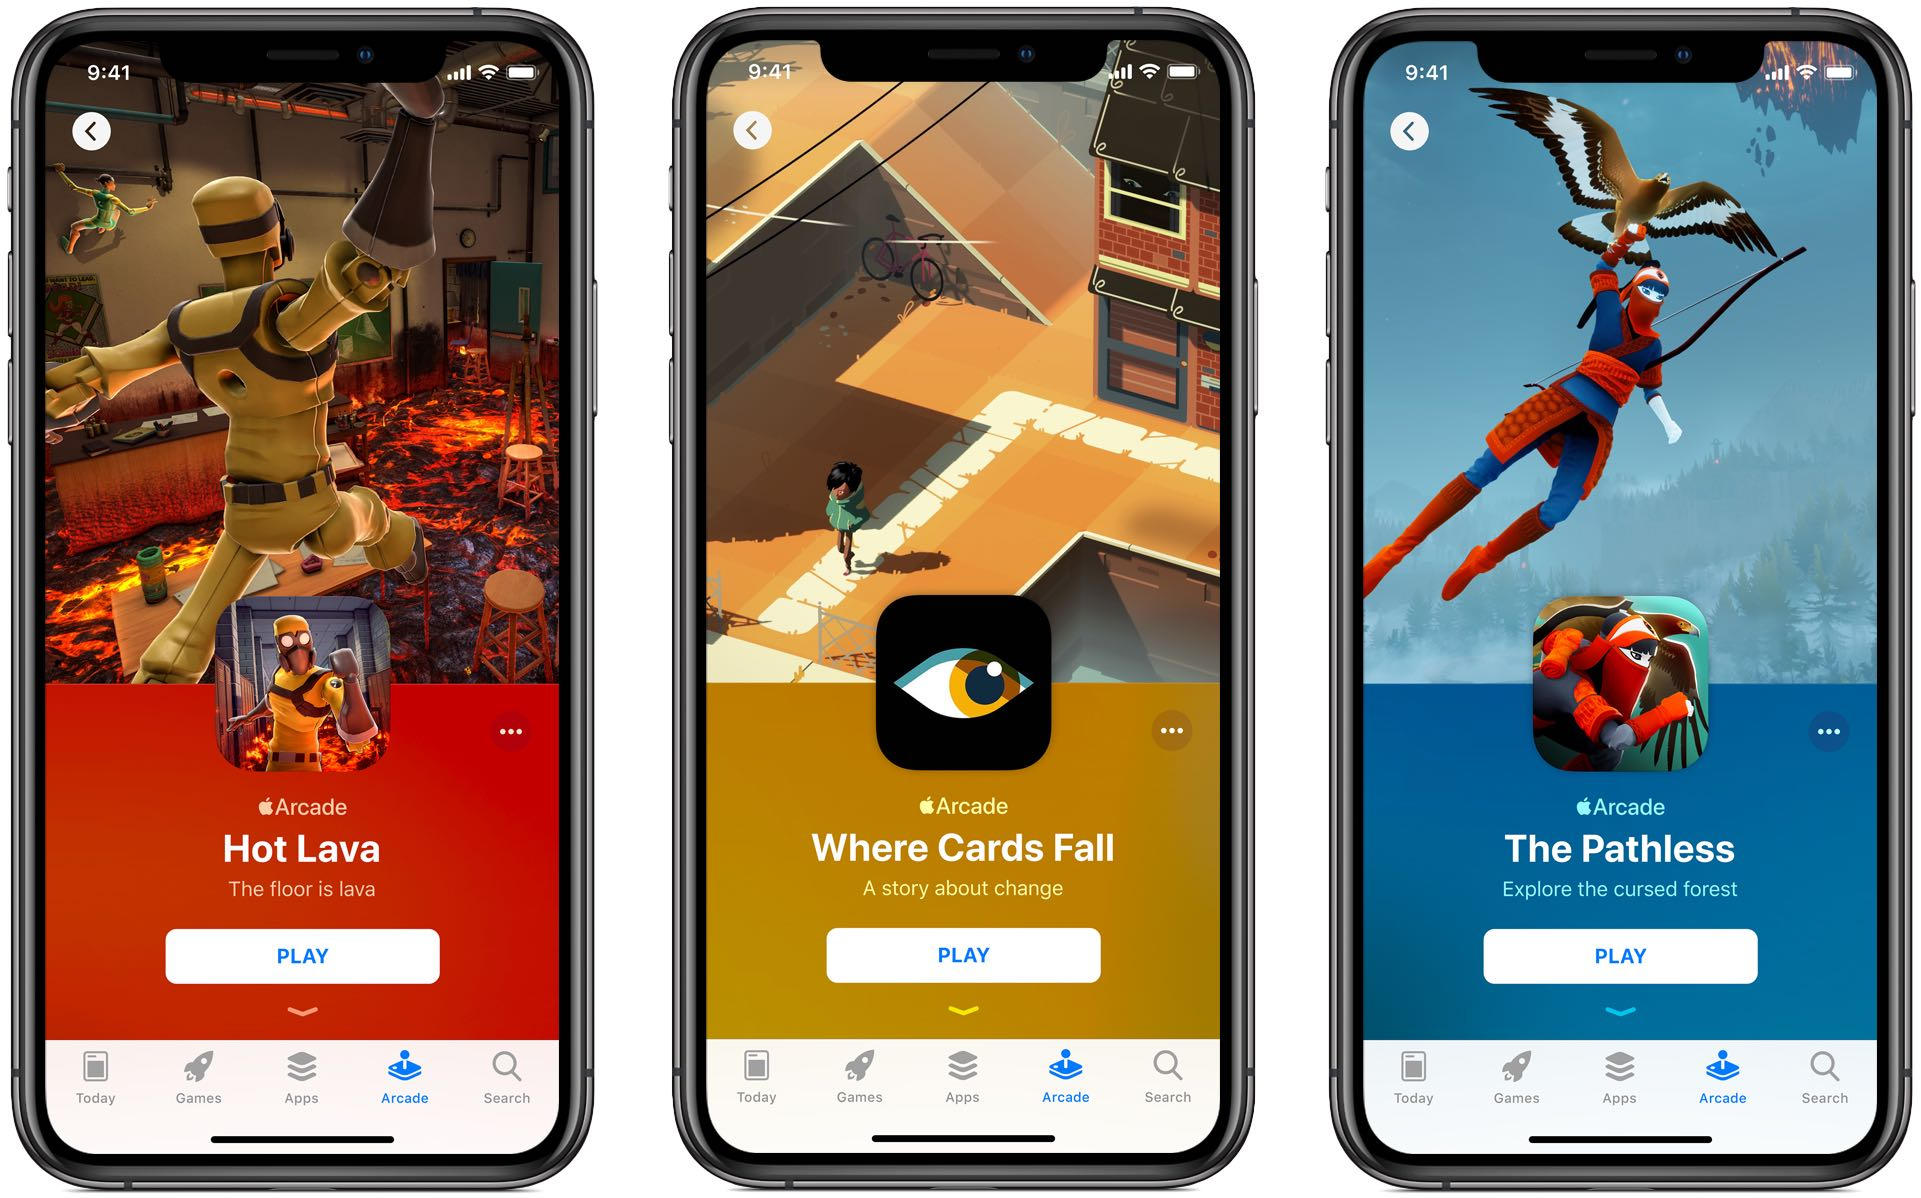 Apple Arcade یک <strong>سرویس</strong> <strong>اشتراک</strong> جدید <strong>همراه</strong> با <strong>دسترسی</strong> به <strong>بیش</strong> از <strong>۱۰۰</strong> <strong>بازی</strong> جدید و <strong>انحصاری</strong> <strong>معرفی</strong> شد